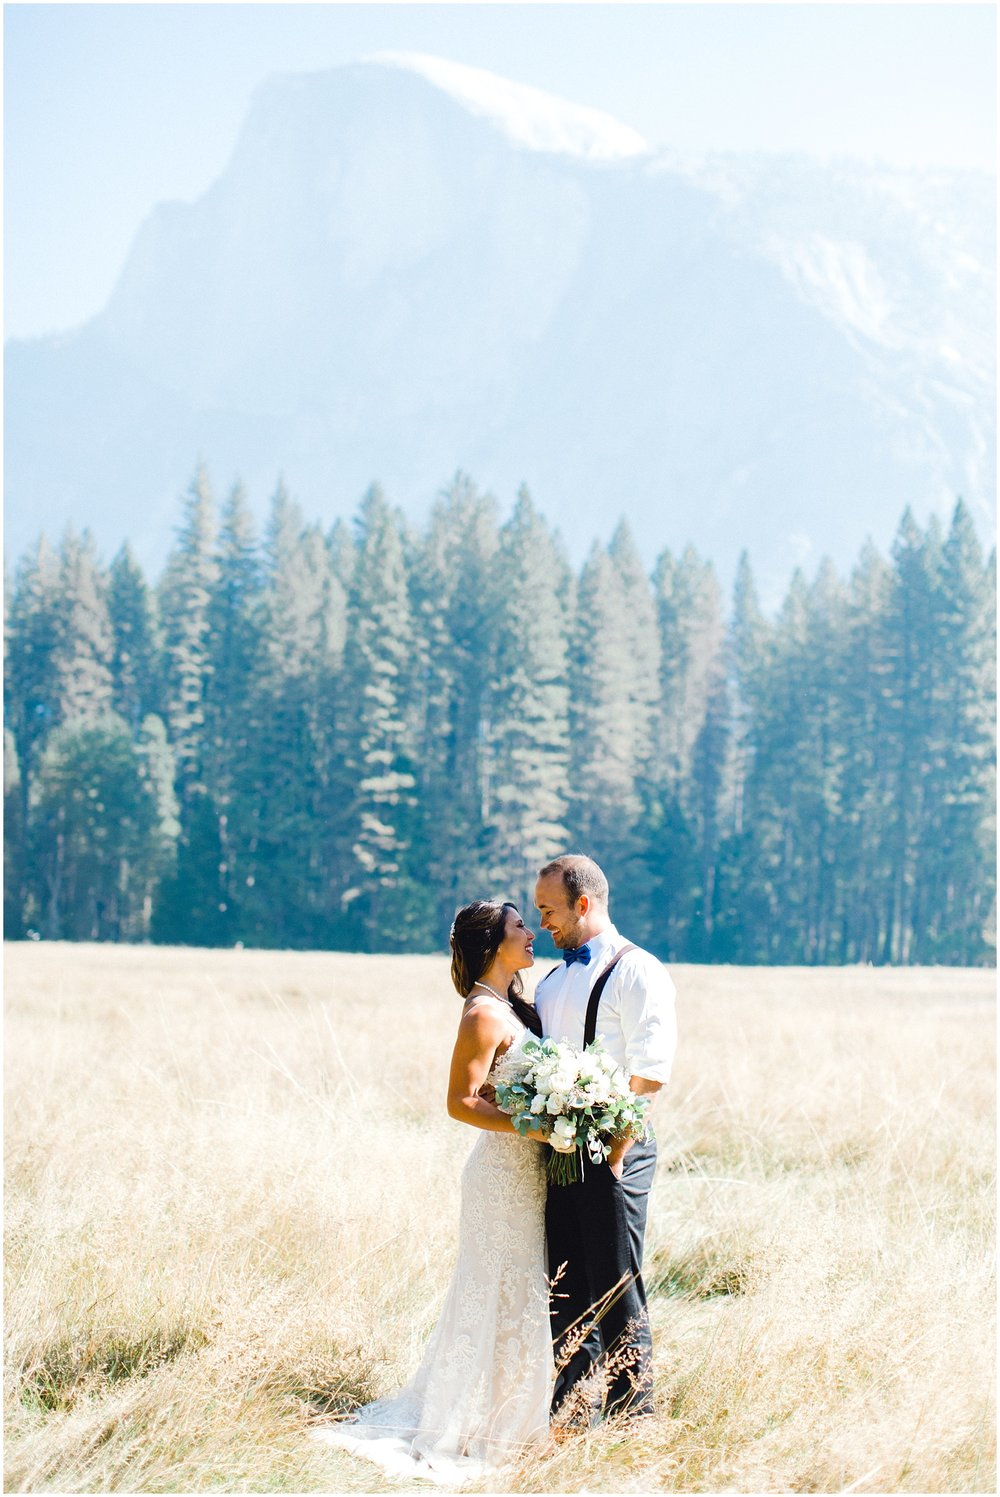 Fresno Wedding photography, Fresno Wedding photographers, California fine art wedding photographer, Fresno Wedding Photography, California Wedding Photographers, Yosemite wedding photographer